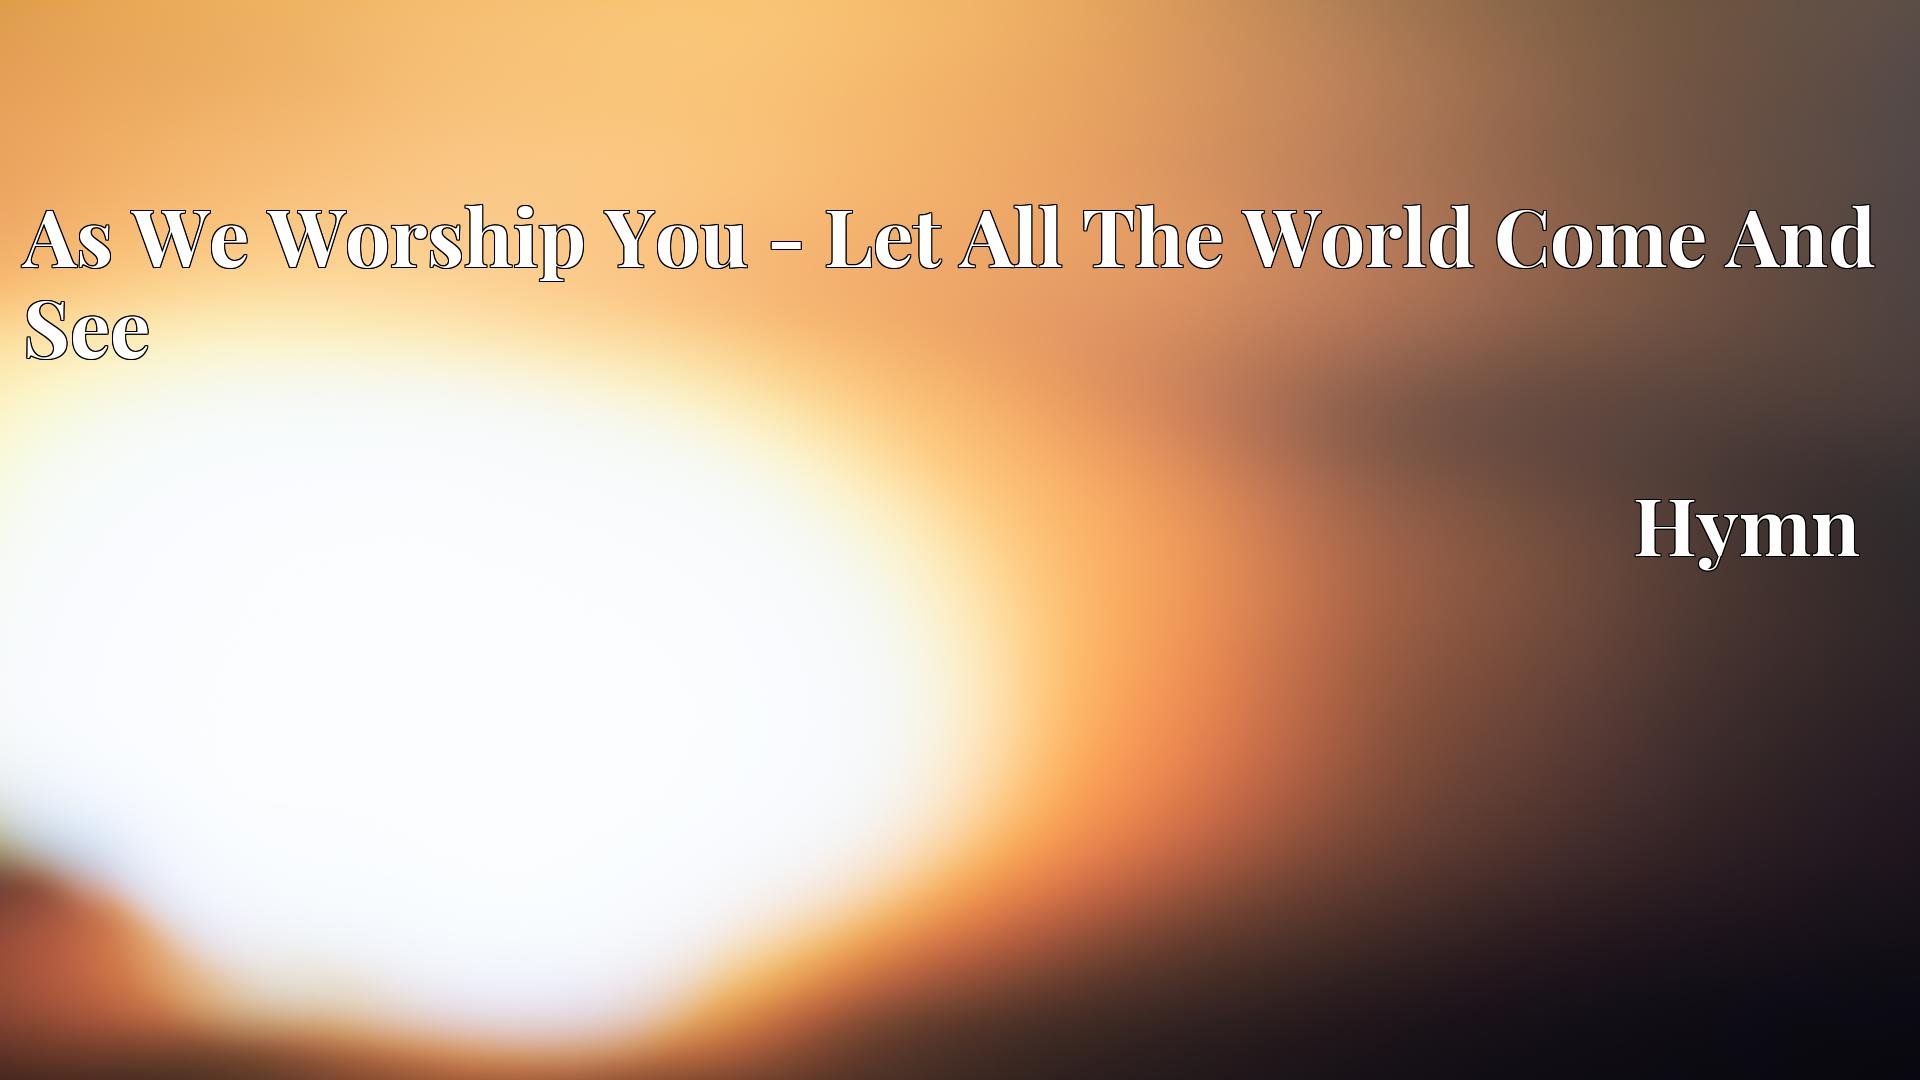 As We Worship You - Let All The World Come And See - Hymn